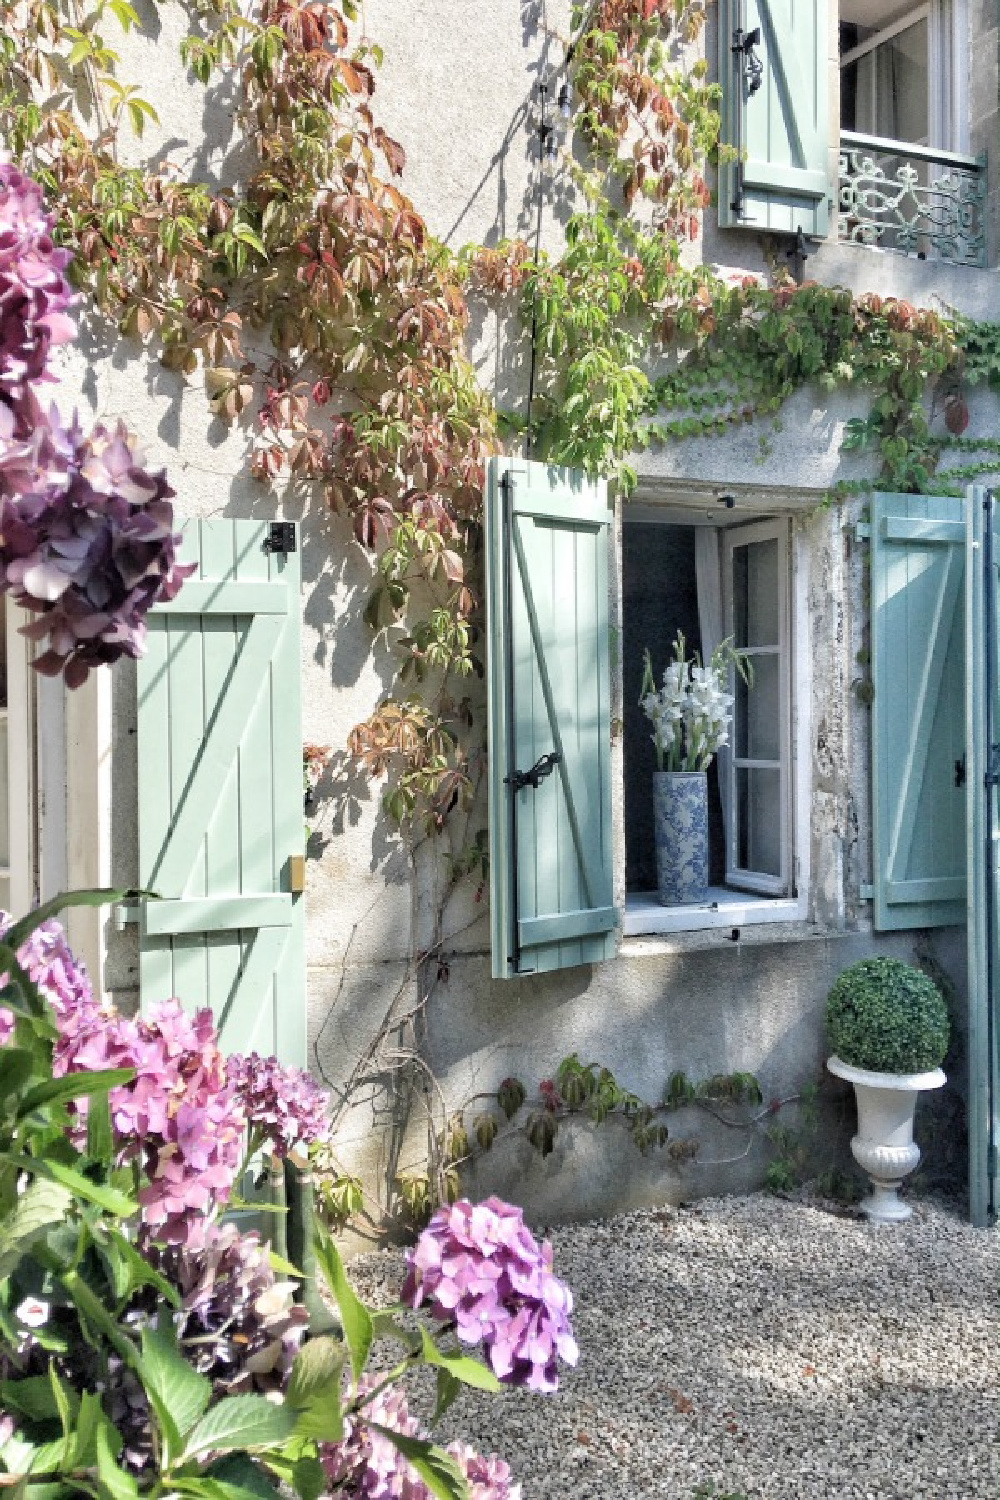 Green shutters on a darling rustic French farmhouse exterior with climbing vines. You'll love this photo gallery and house tour of a home near Bordeaux, France. #vivietmargot #frenchfarmhouse #rusticdecor #countryfrench #houseexterior